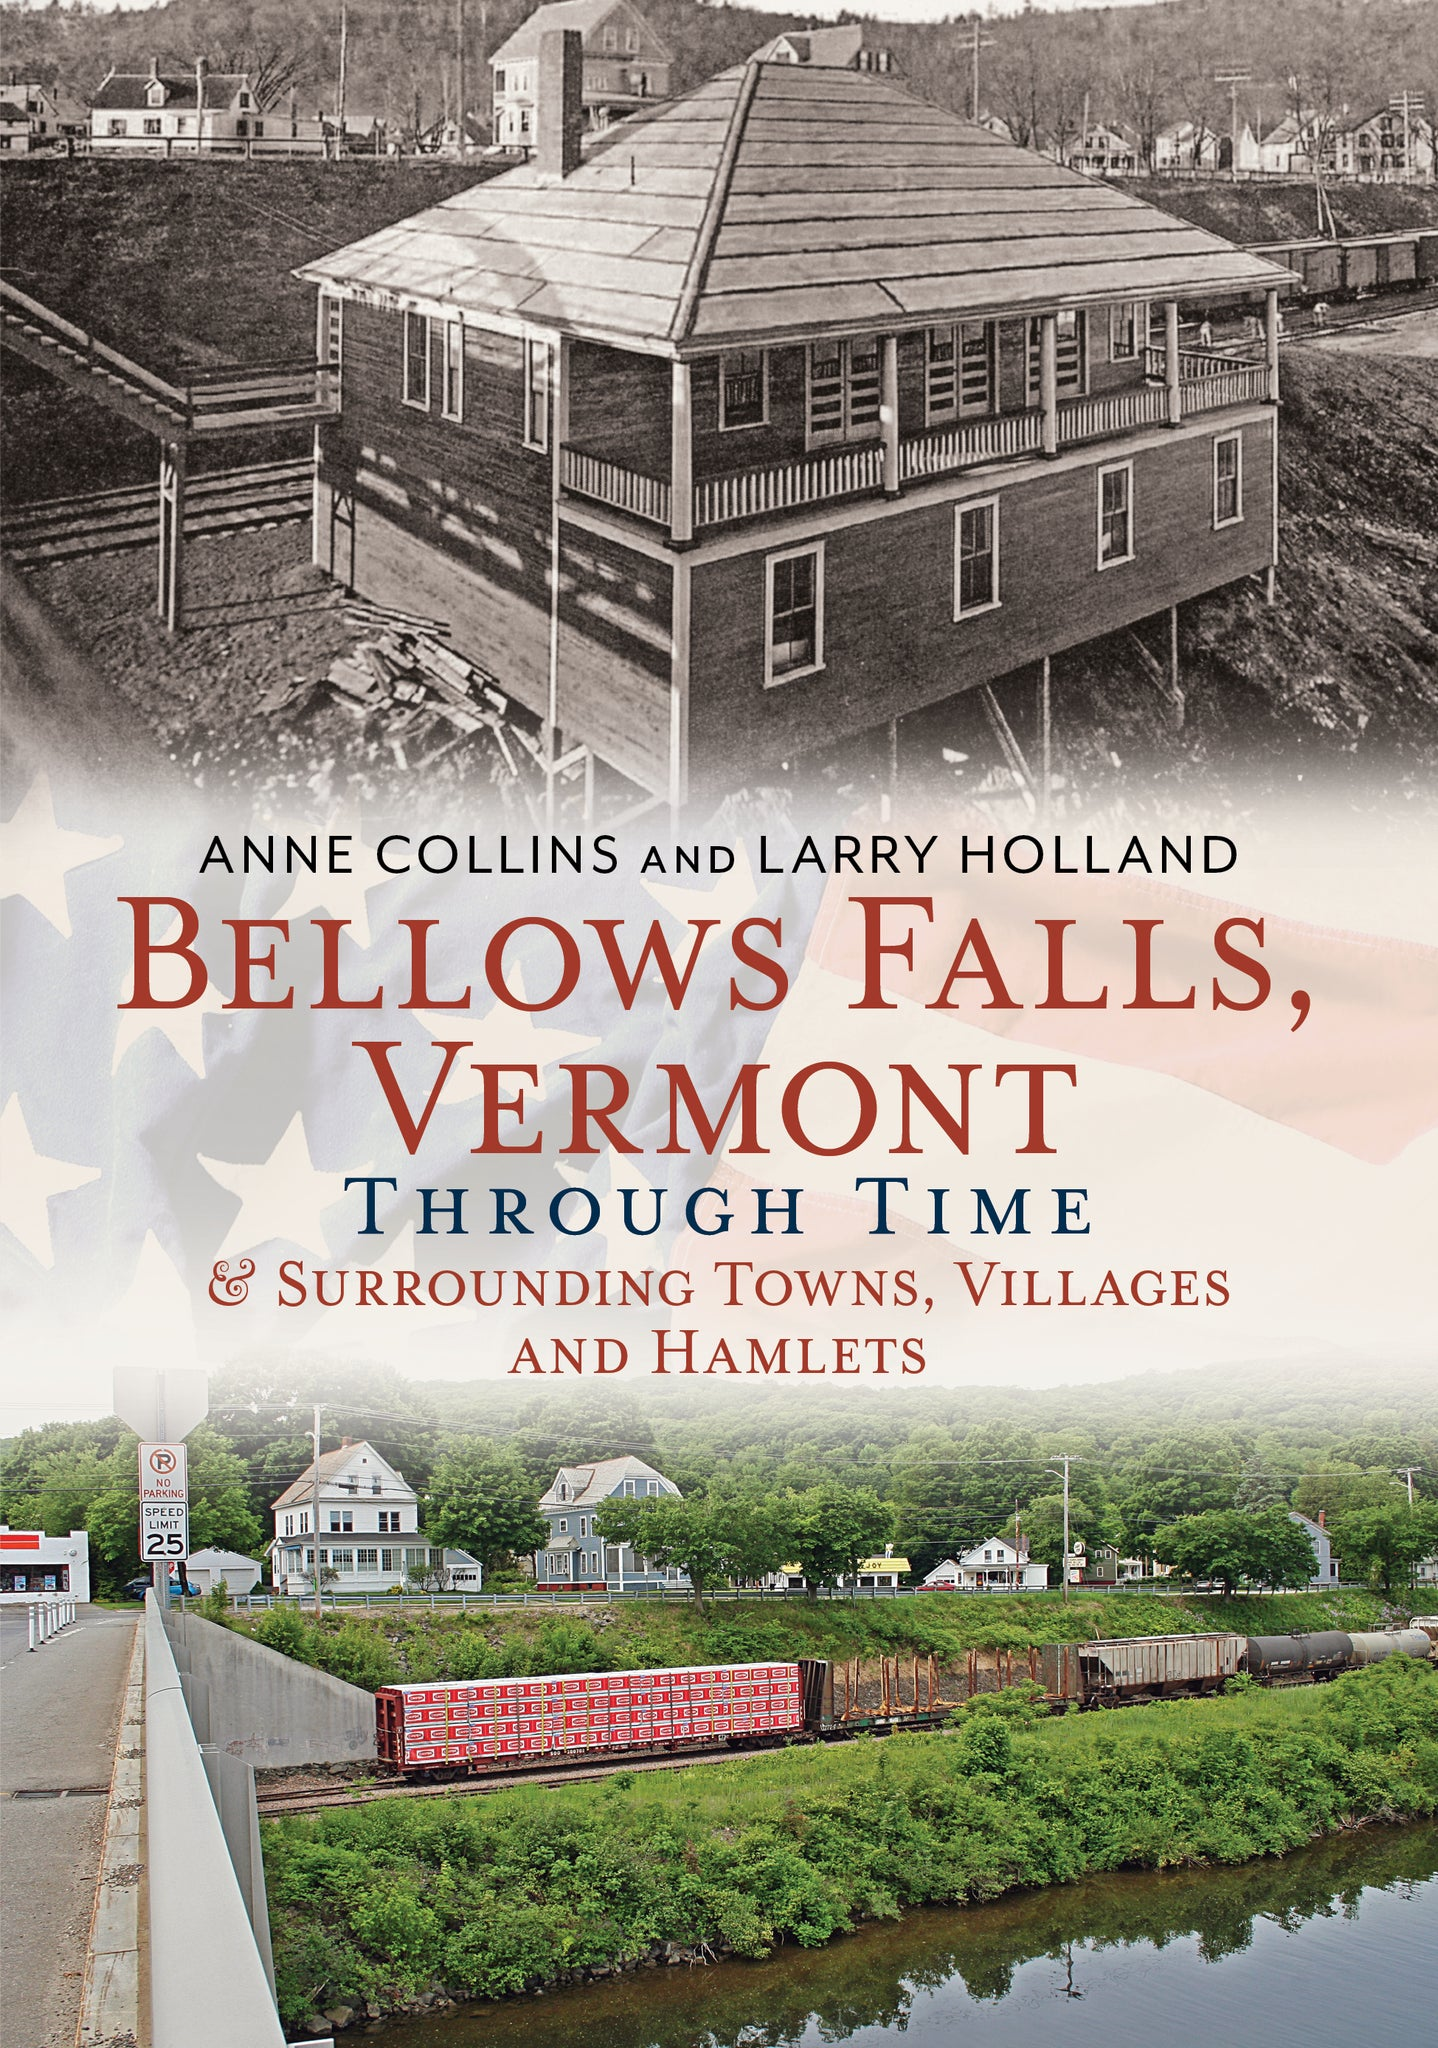 Bellows Falls, Vermont Through Time & Surrounding Towns, Villages and Hamlets - published by Americat Through Time